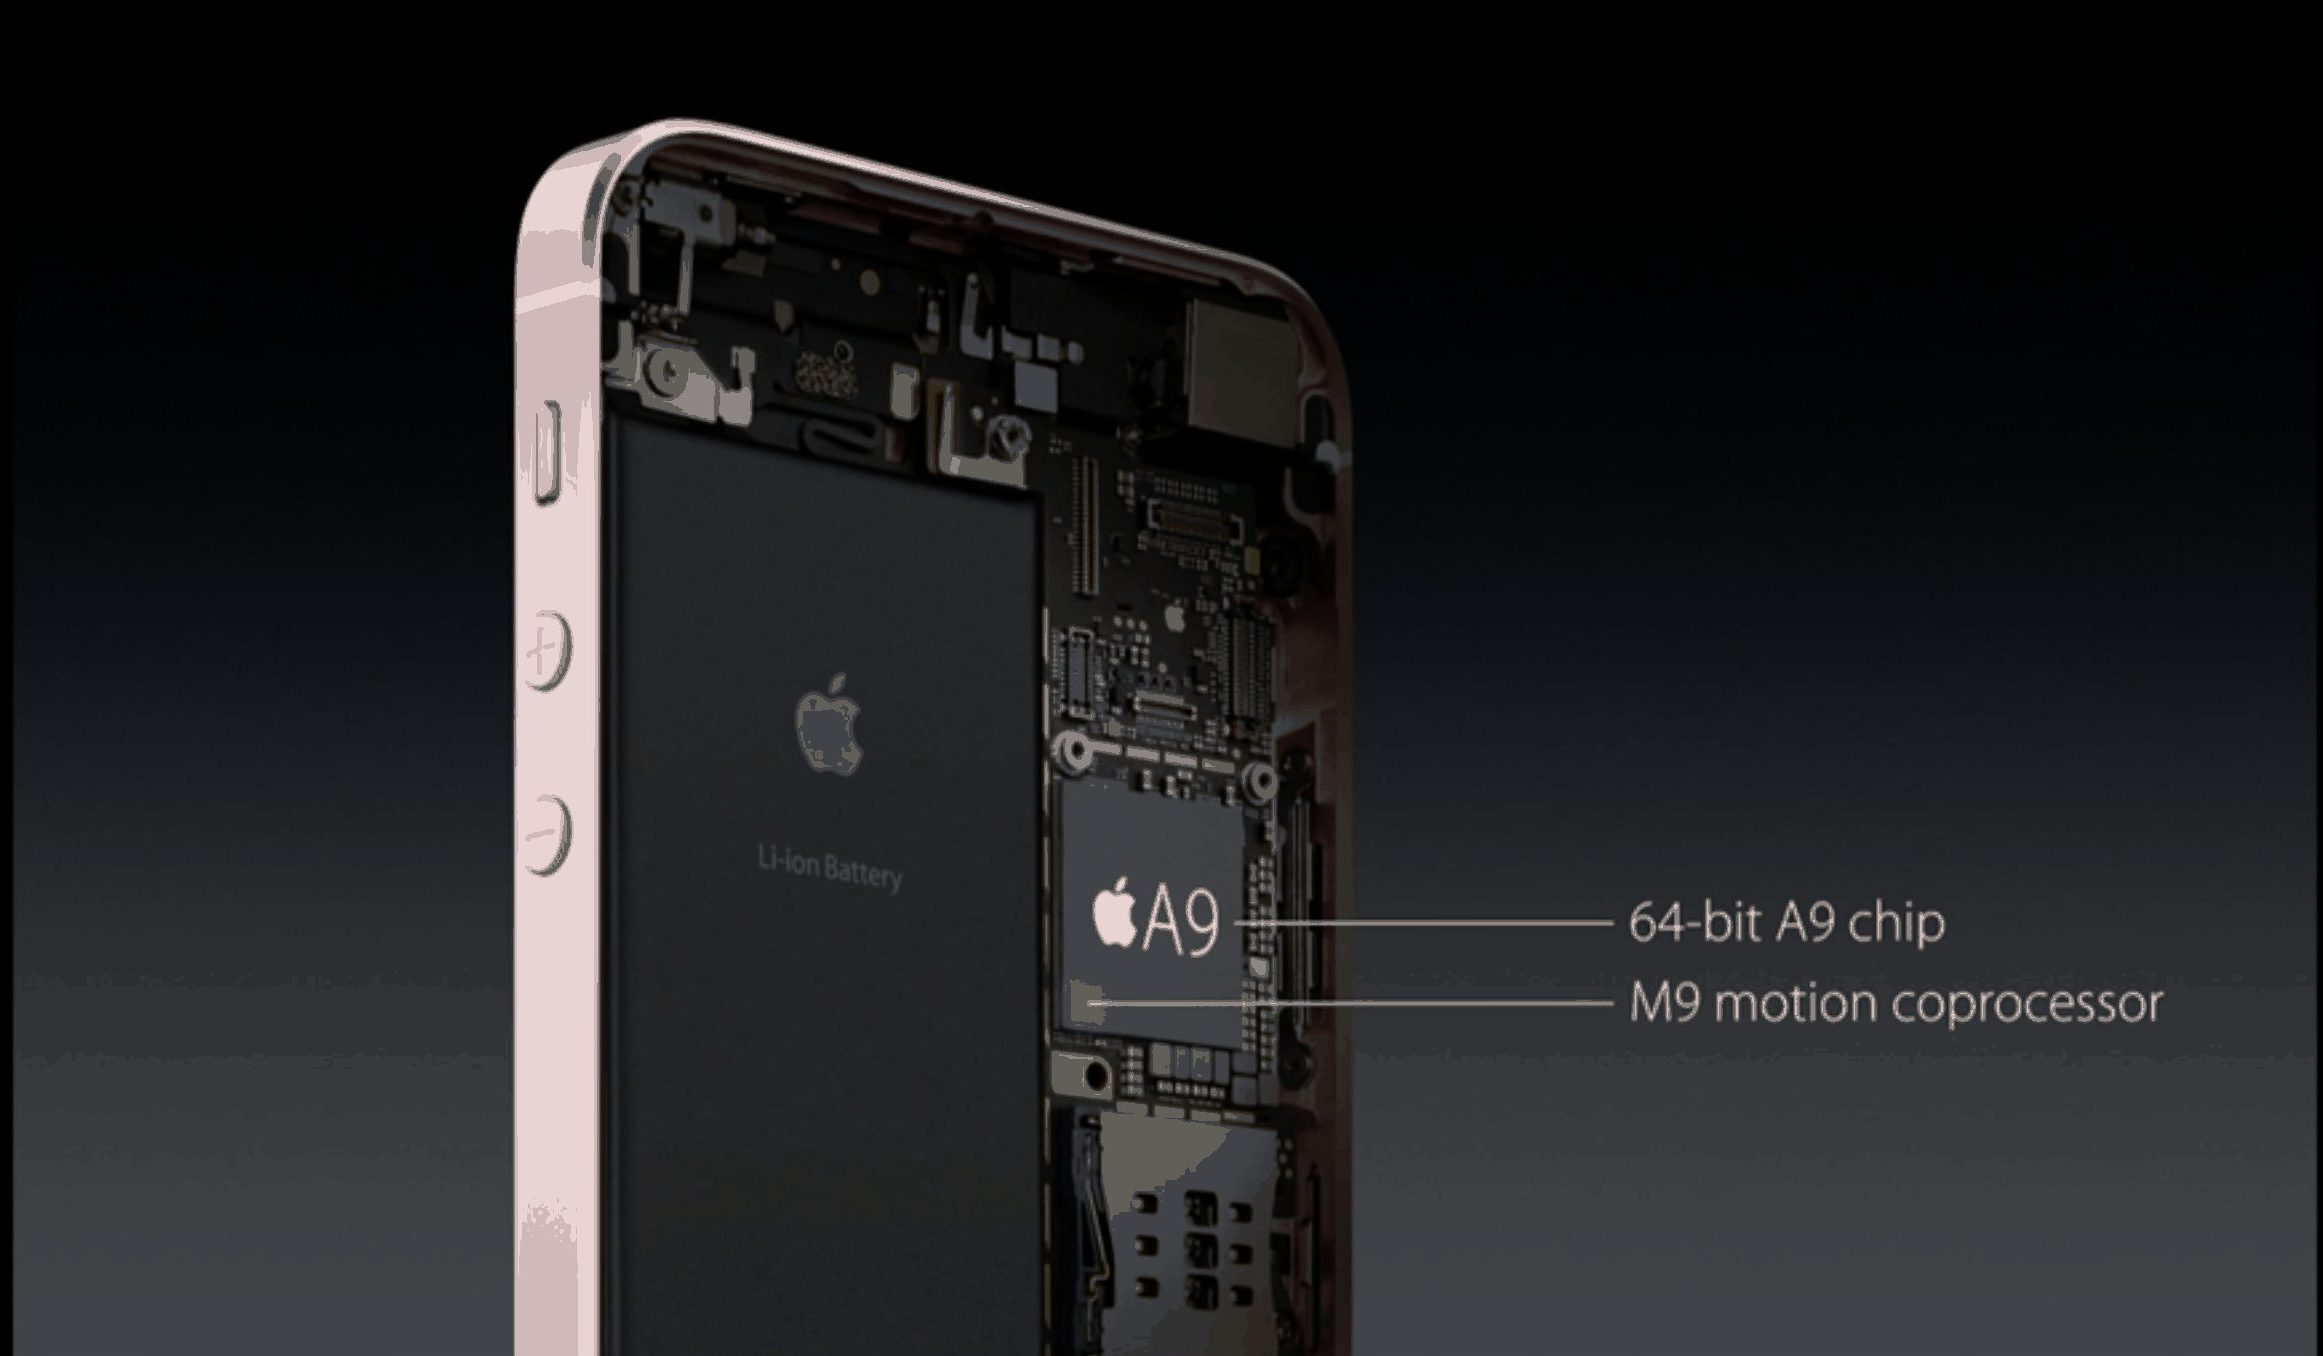 Apple A9 chip powers the iPhone SE